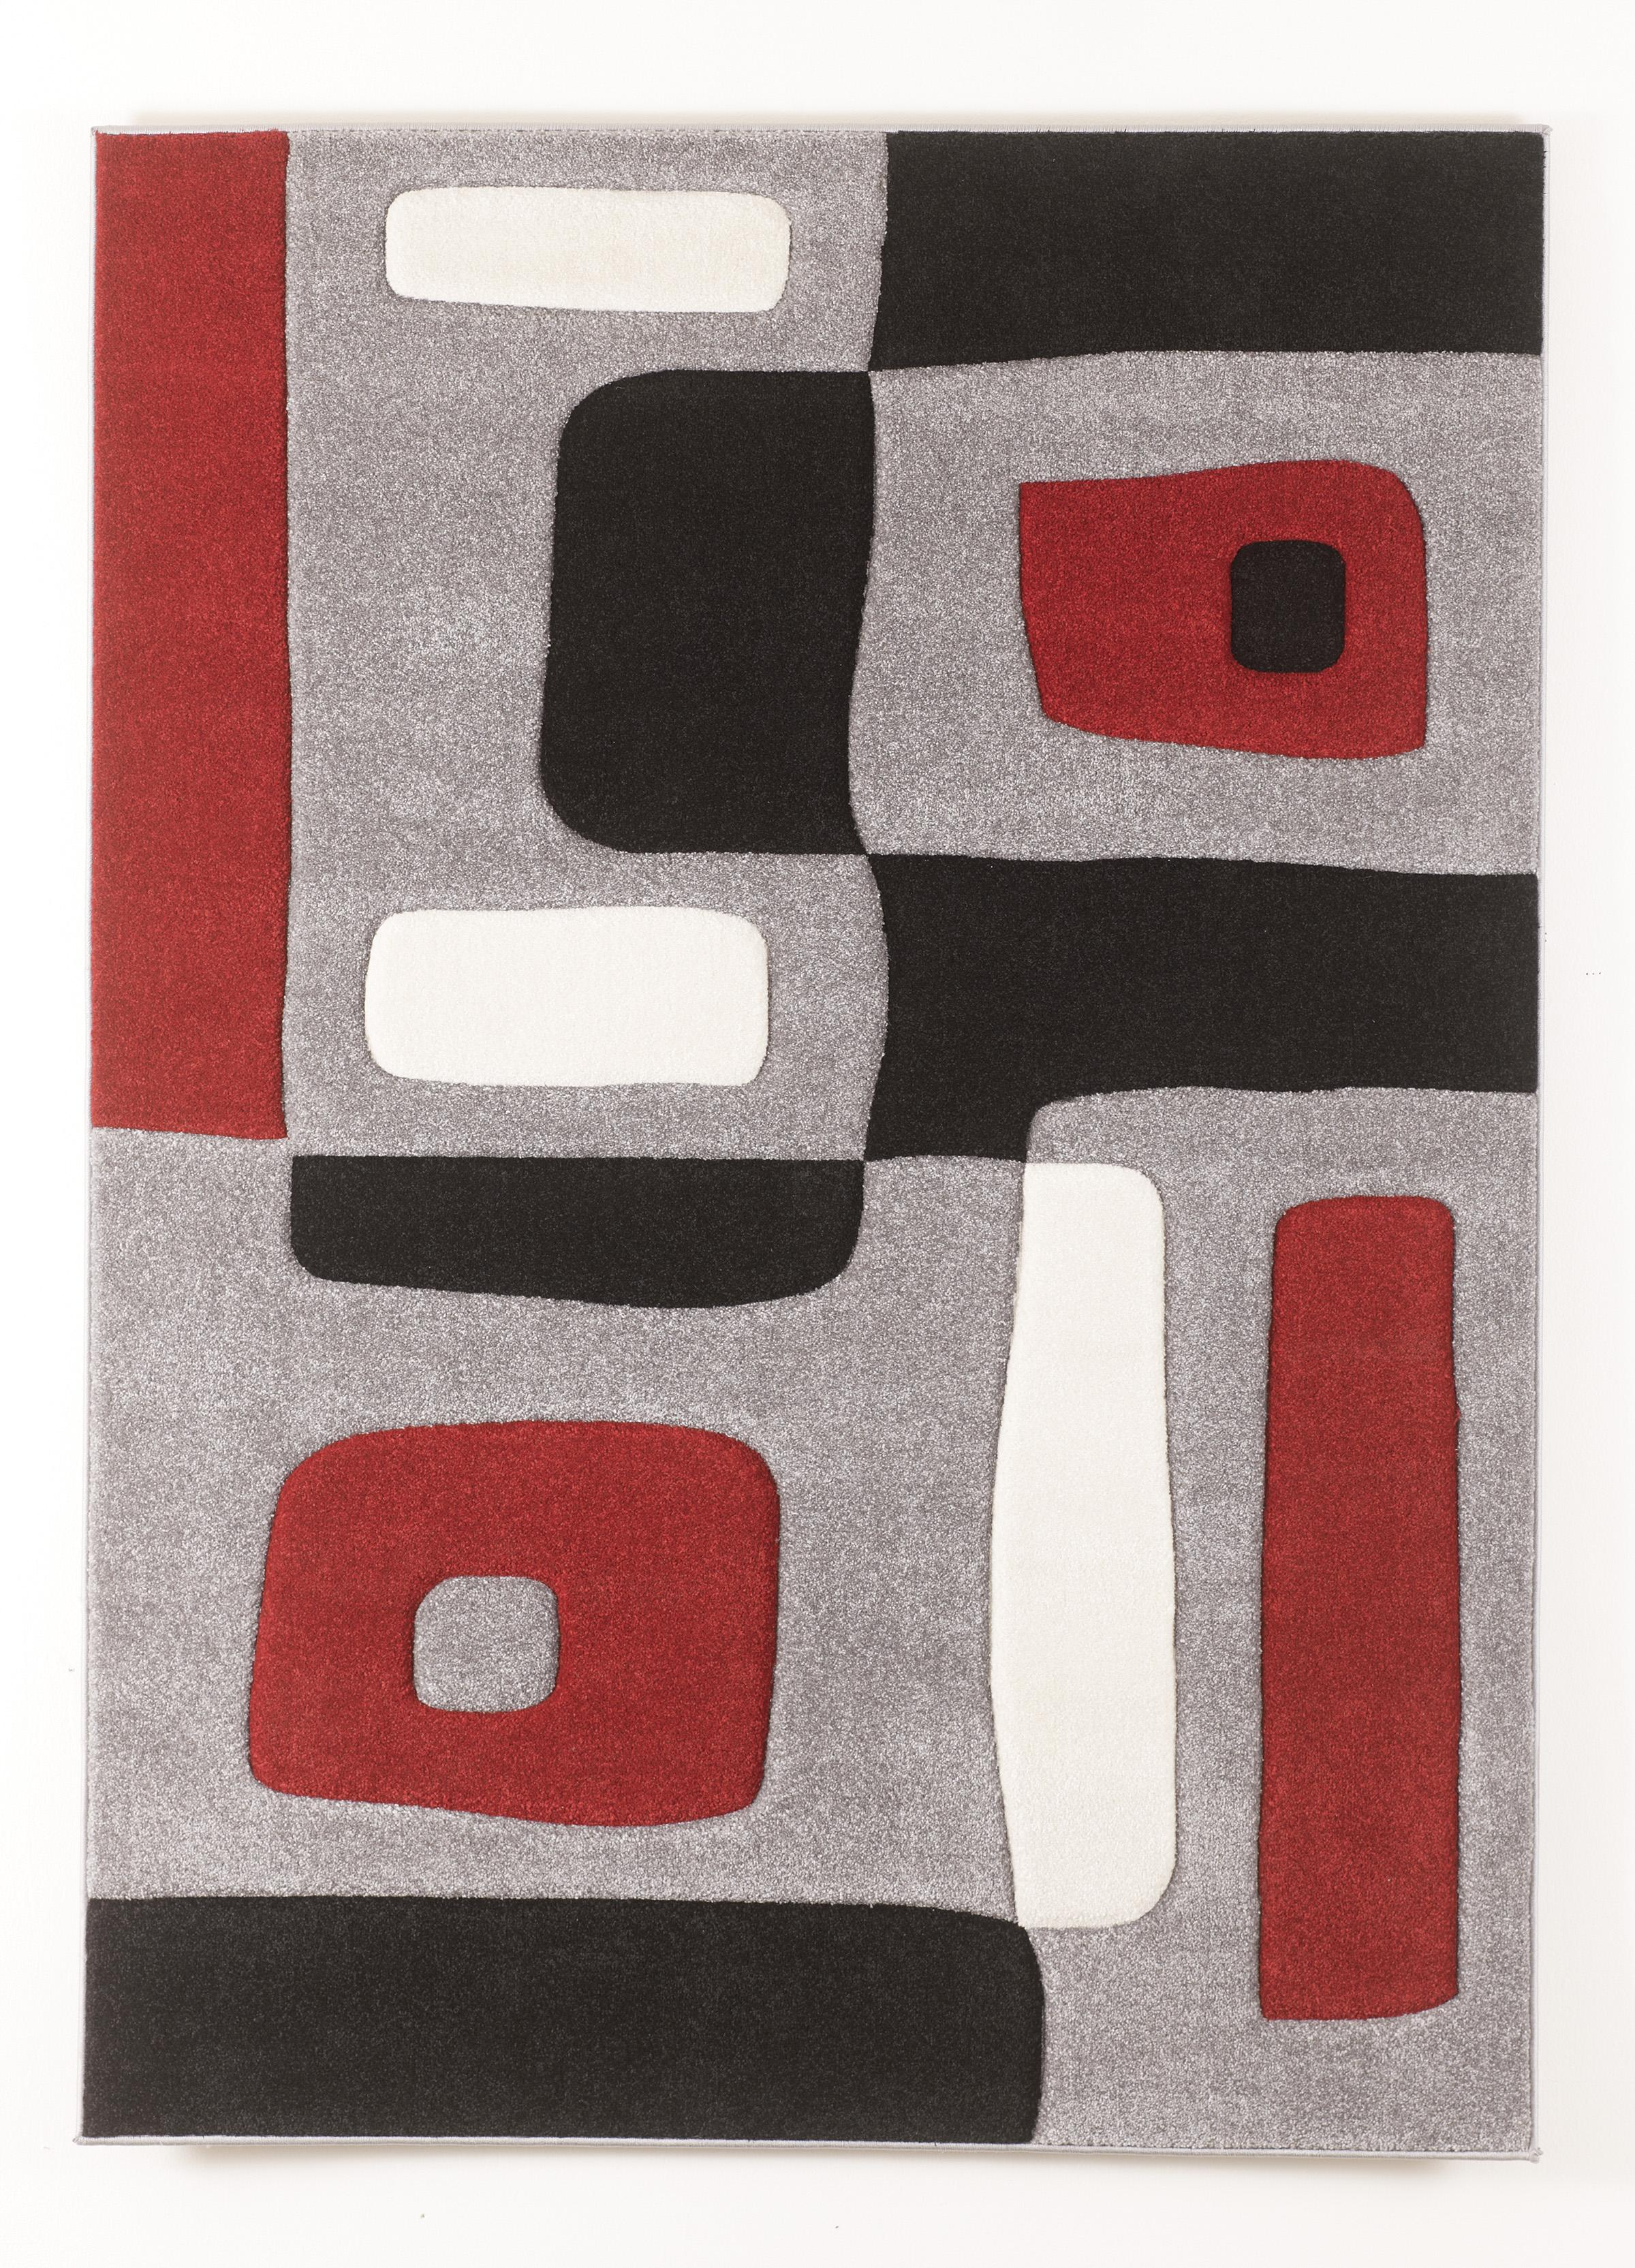 Signature Design by Ashley Contemporary Area Rugs Geo - Red Medium Rug - Item Number: R317002